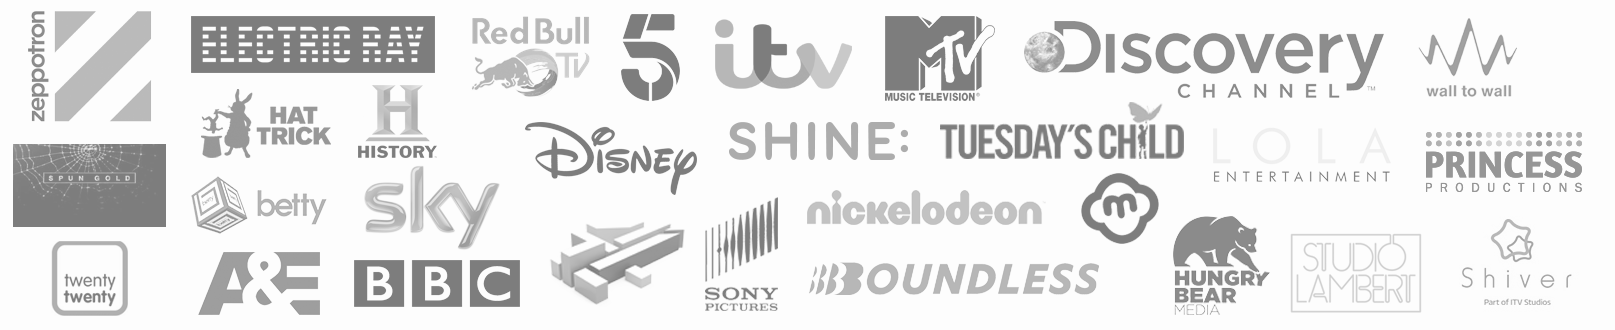 CLIENT LOGOS UPDATED BLACK AND WHITE.png